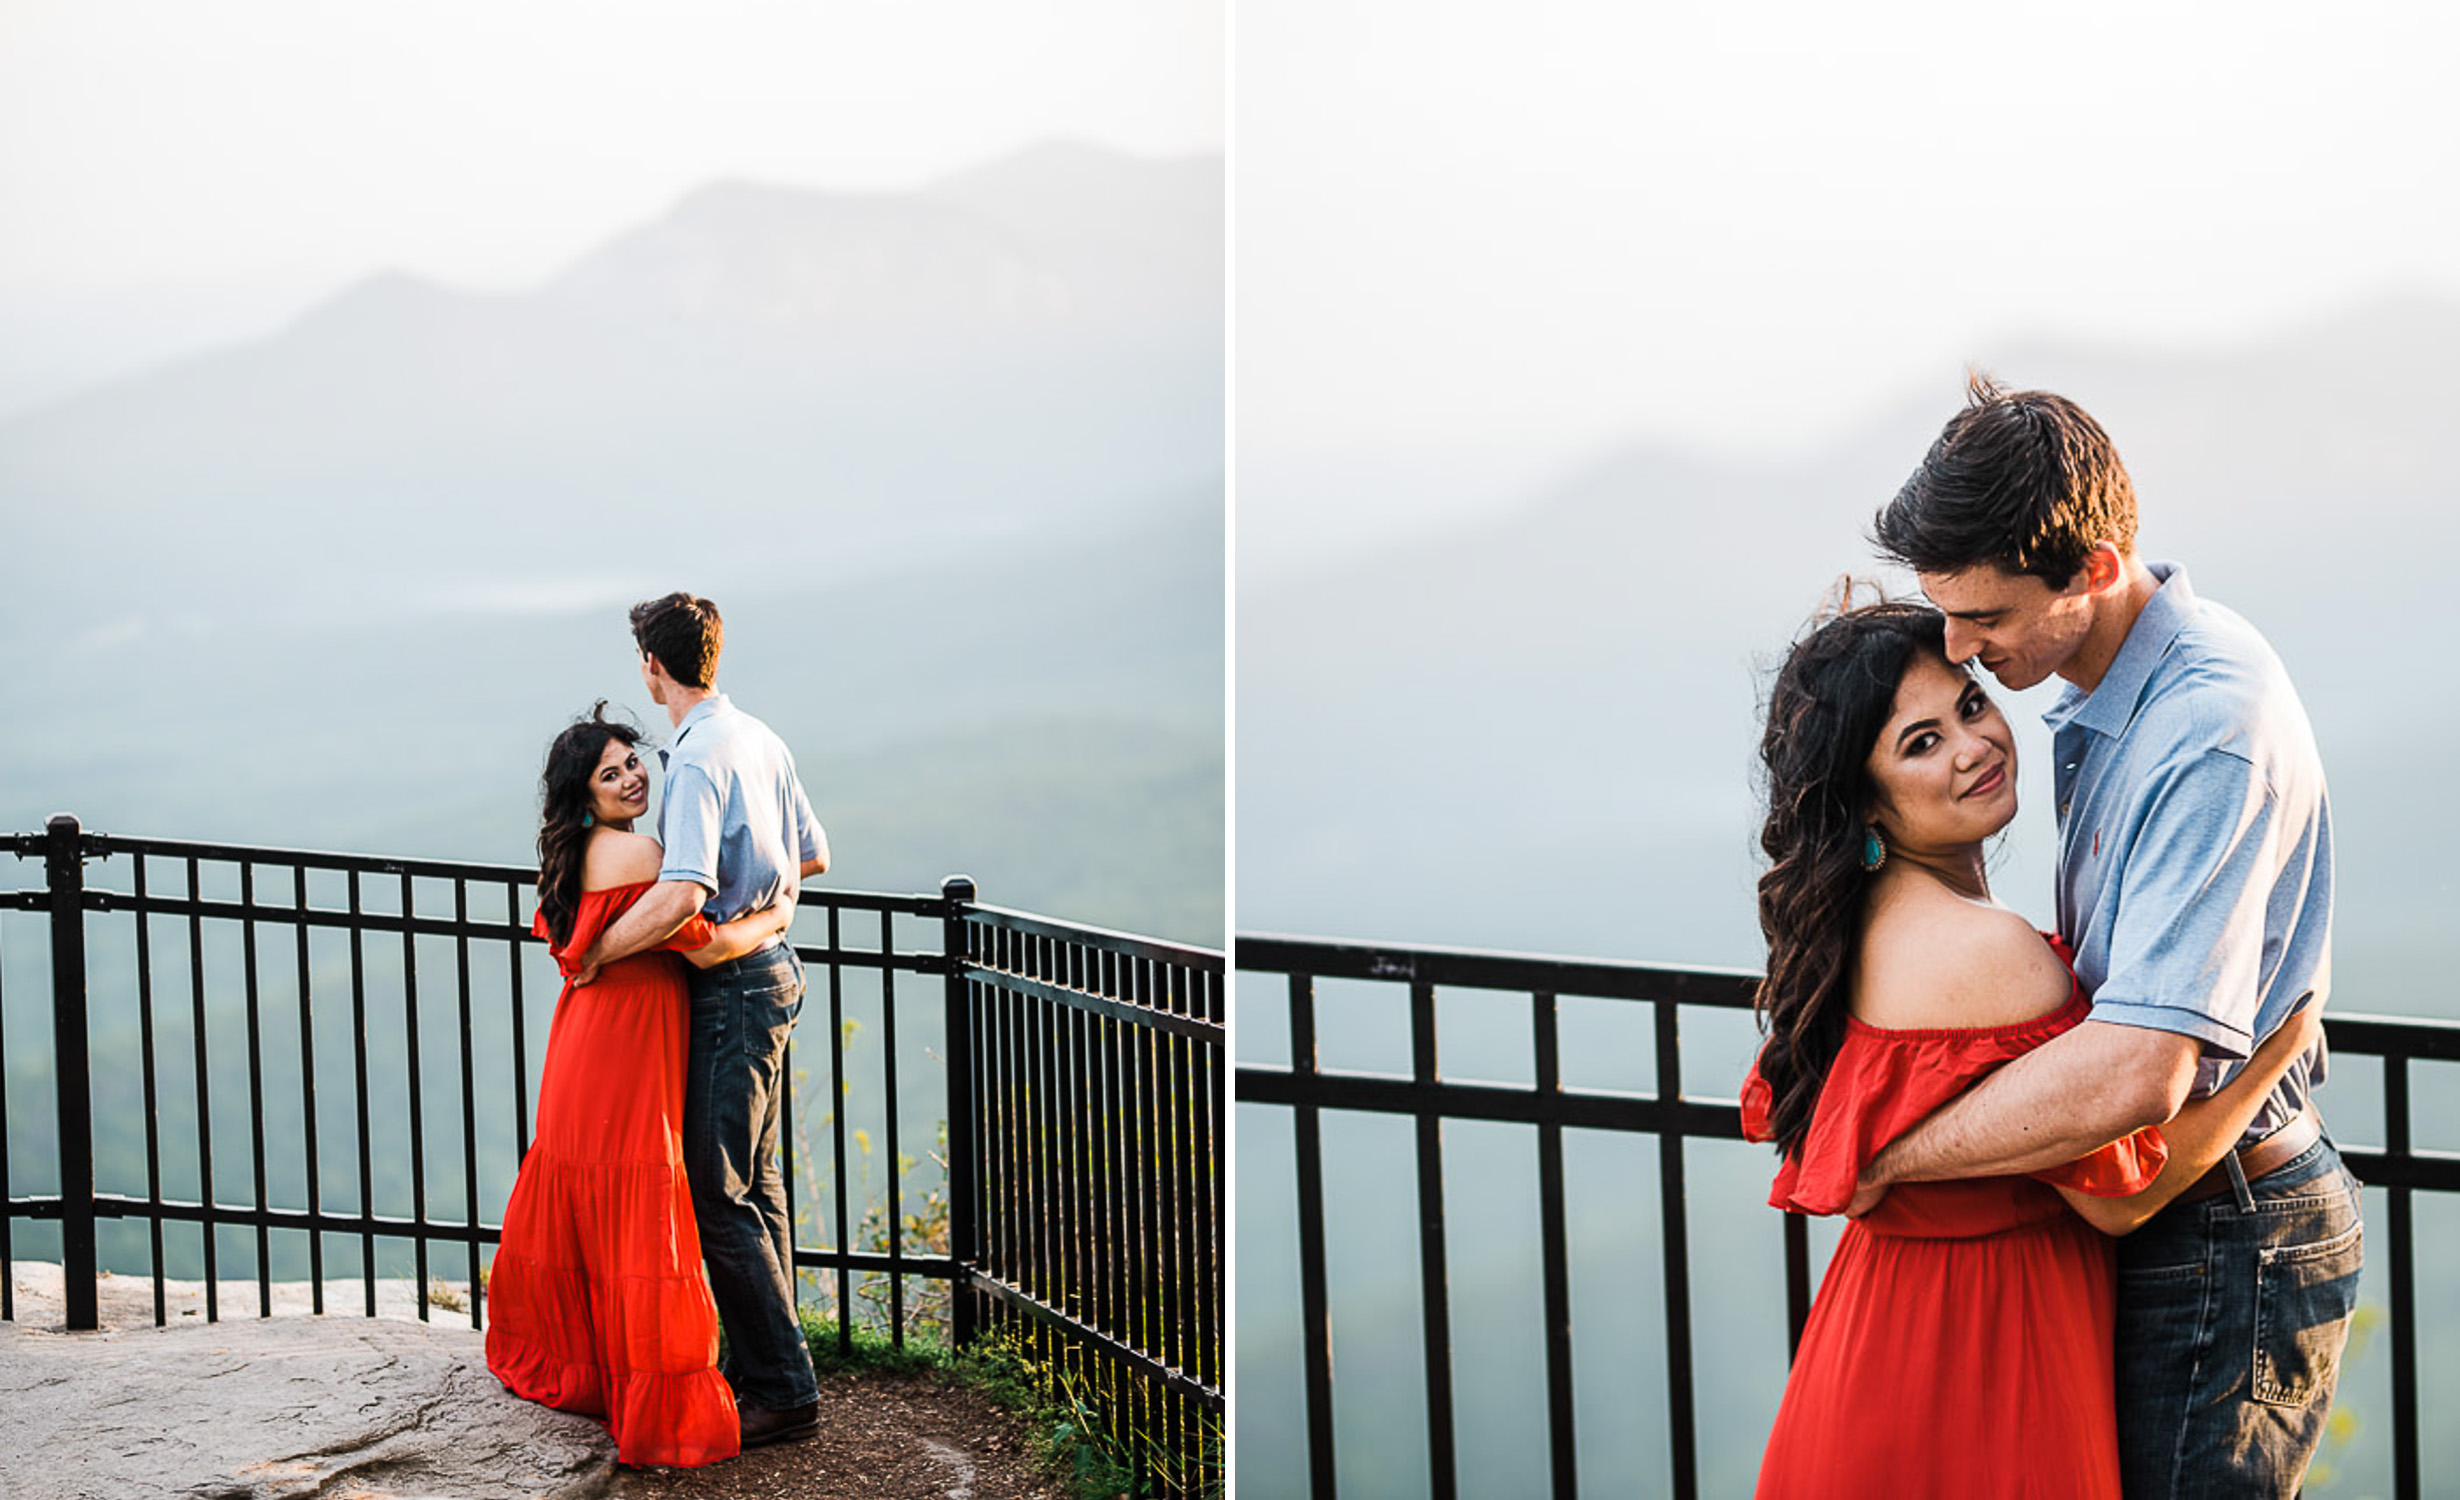 River Engagement Portraits, Engaged, Mountain Engagement, 23.jpg